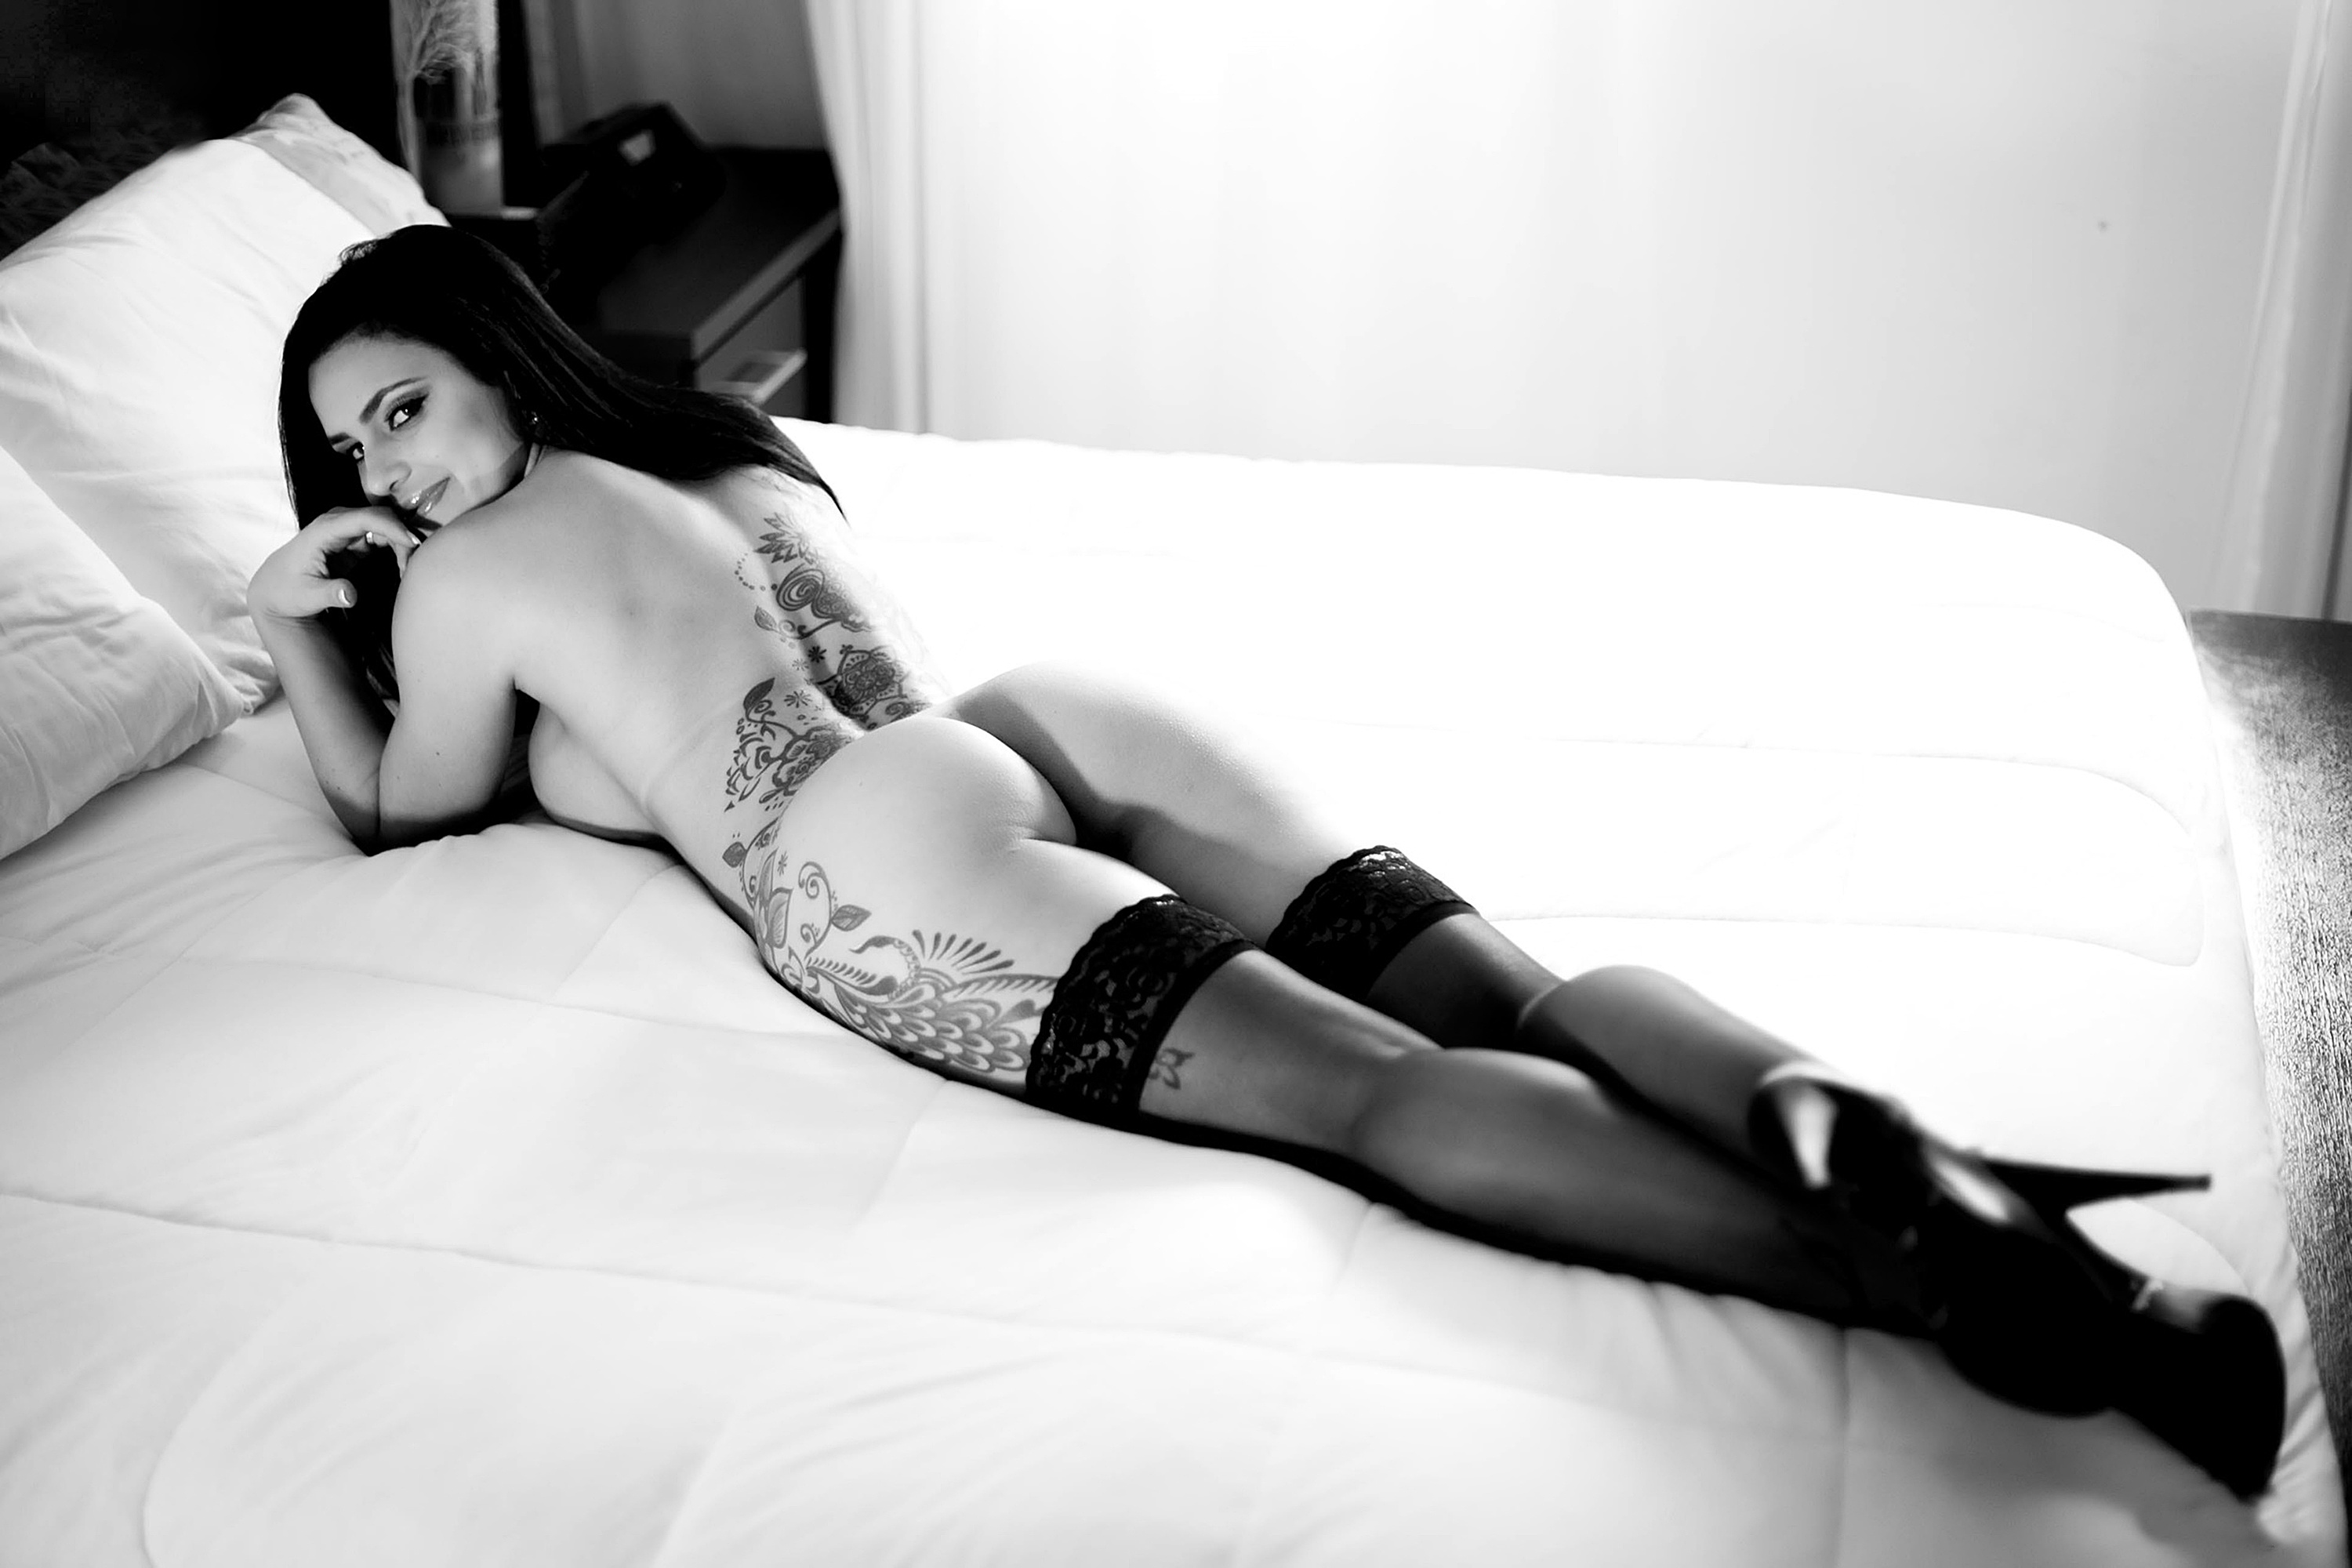 erotic art wife boudoir